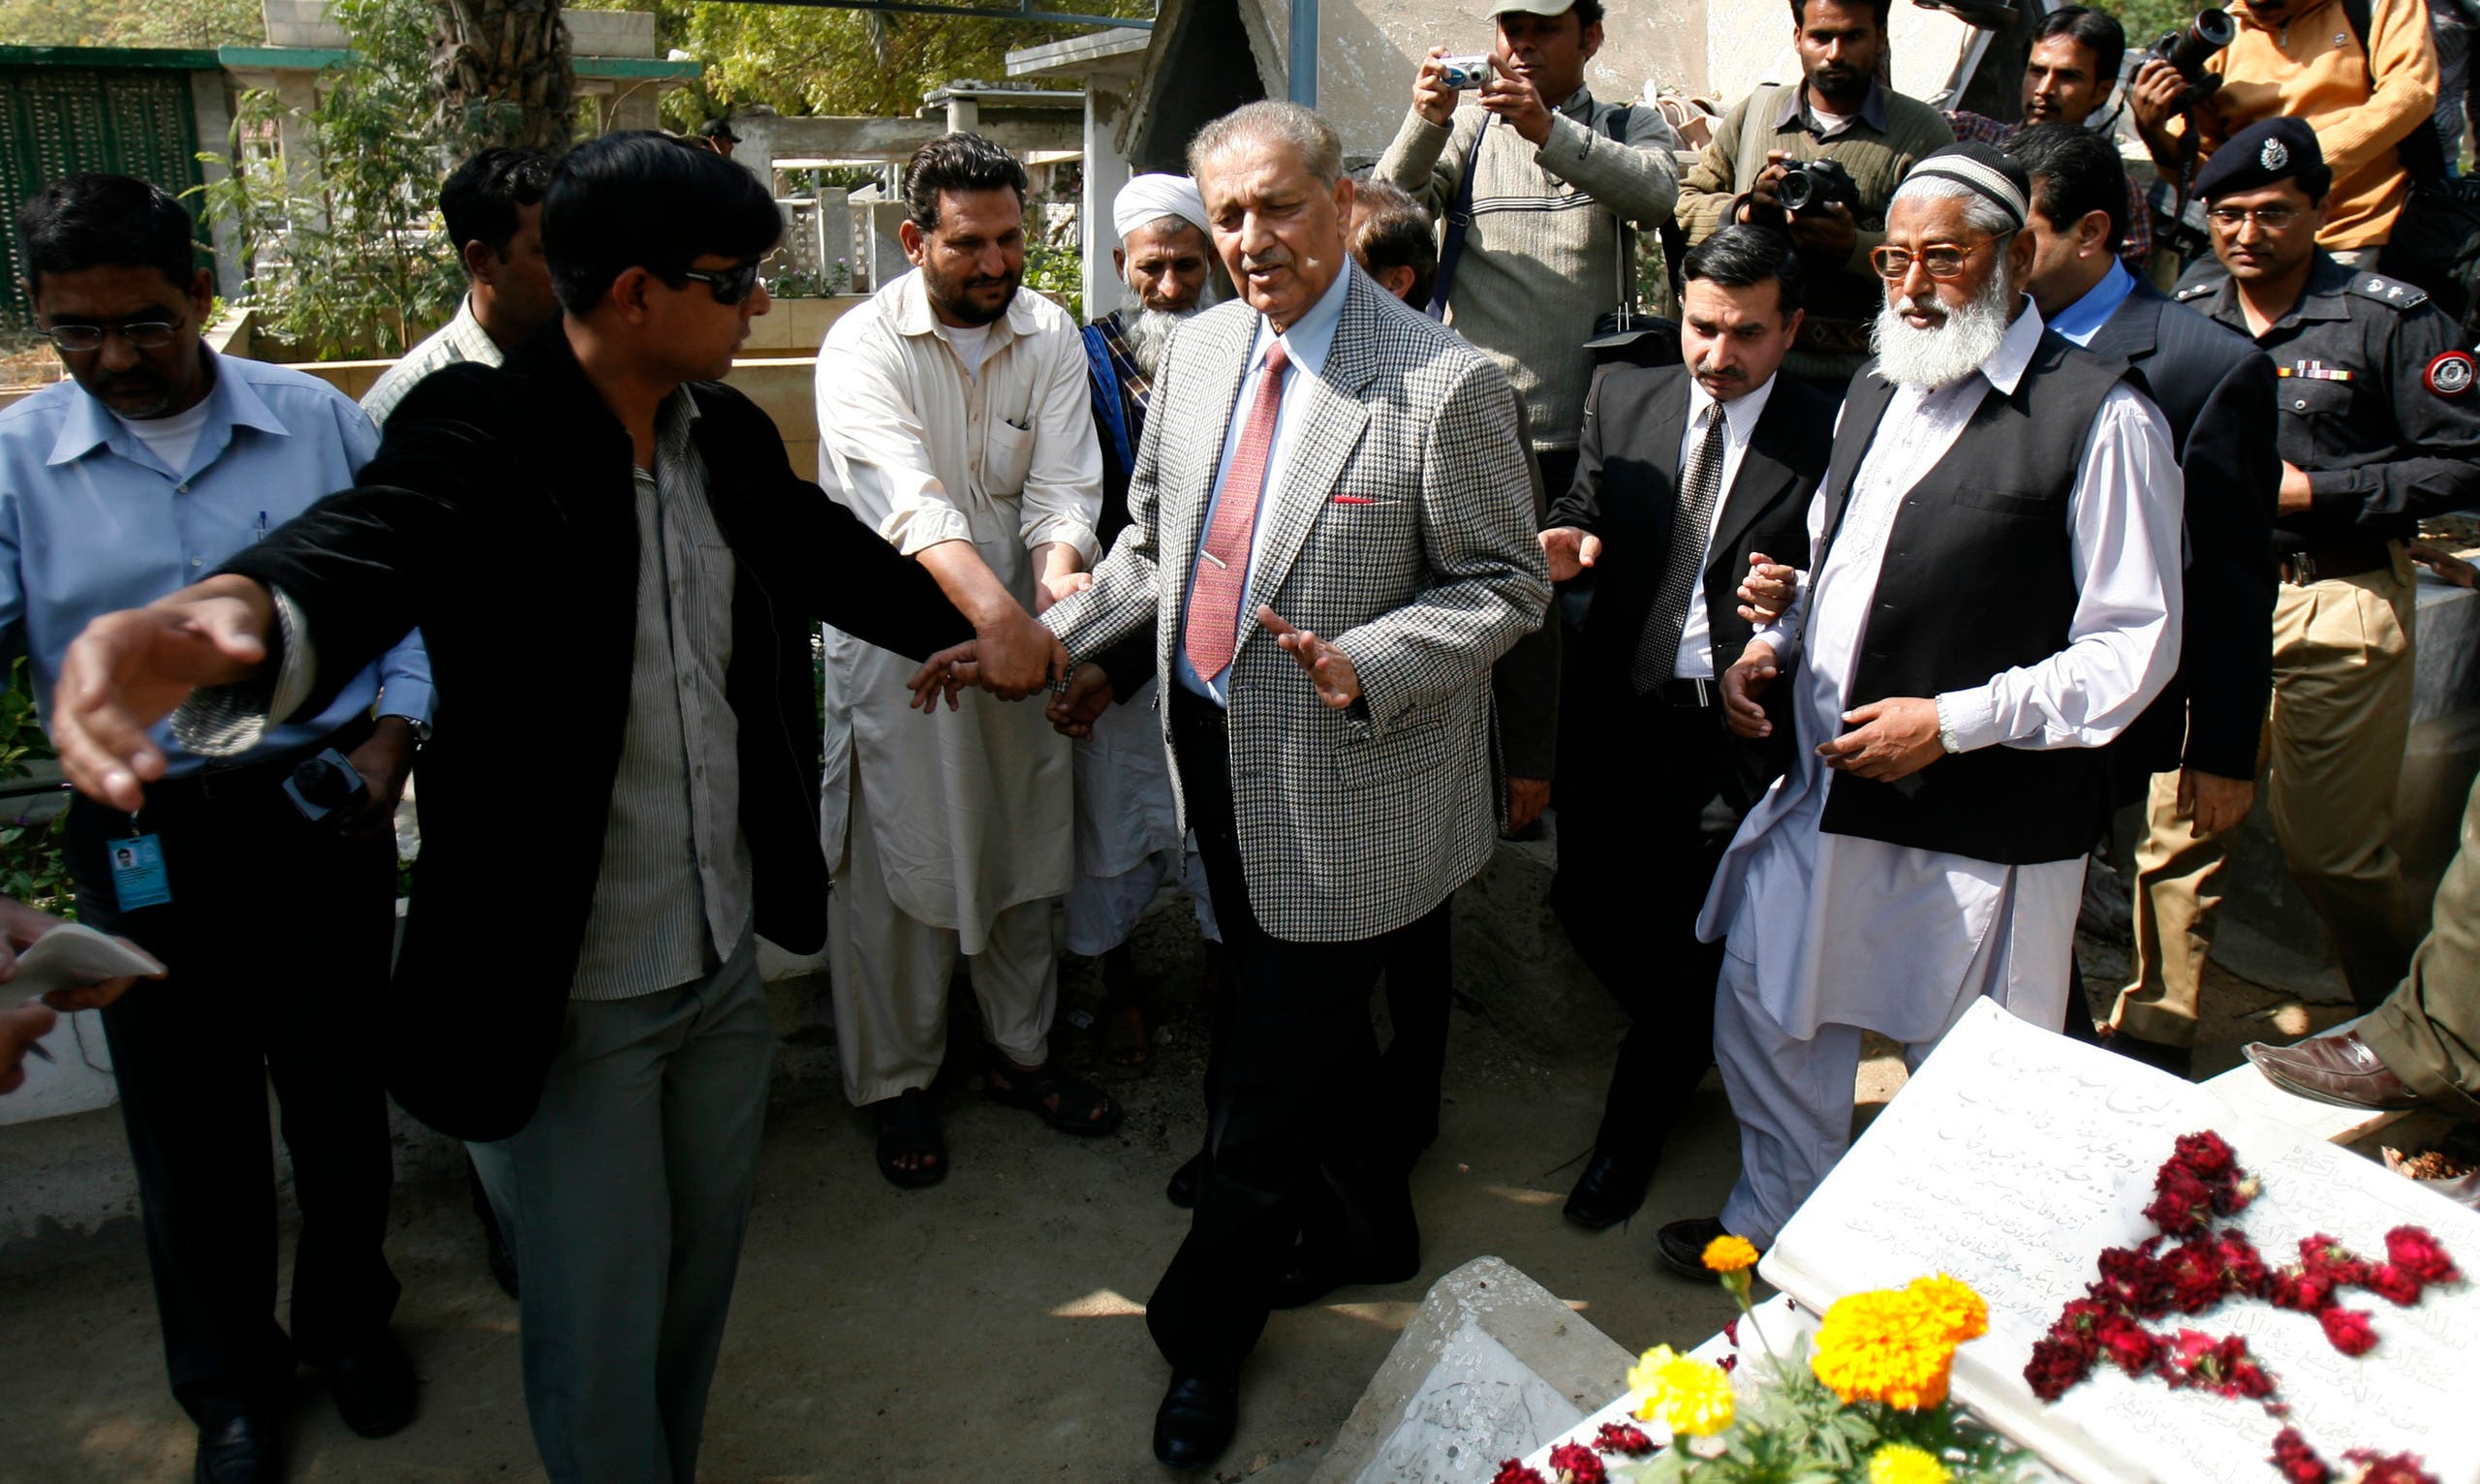 Pakistani nuclear scientist Abdul Qadeer Khan arrives to a graveyard after attending the funeral prayer for his brother, Abdul Qayyum Khan, in Karachi on February 13, 2010. (Reuters)